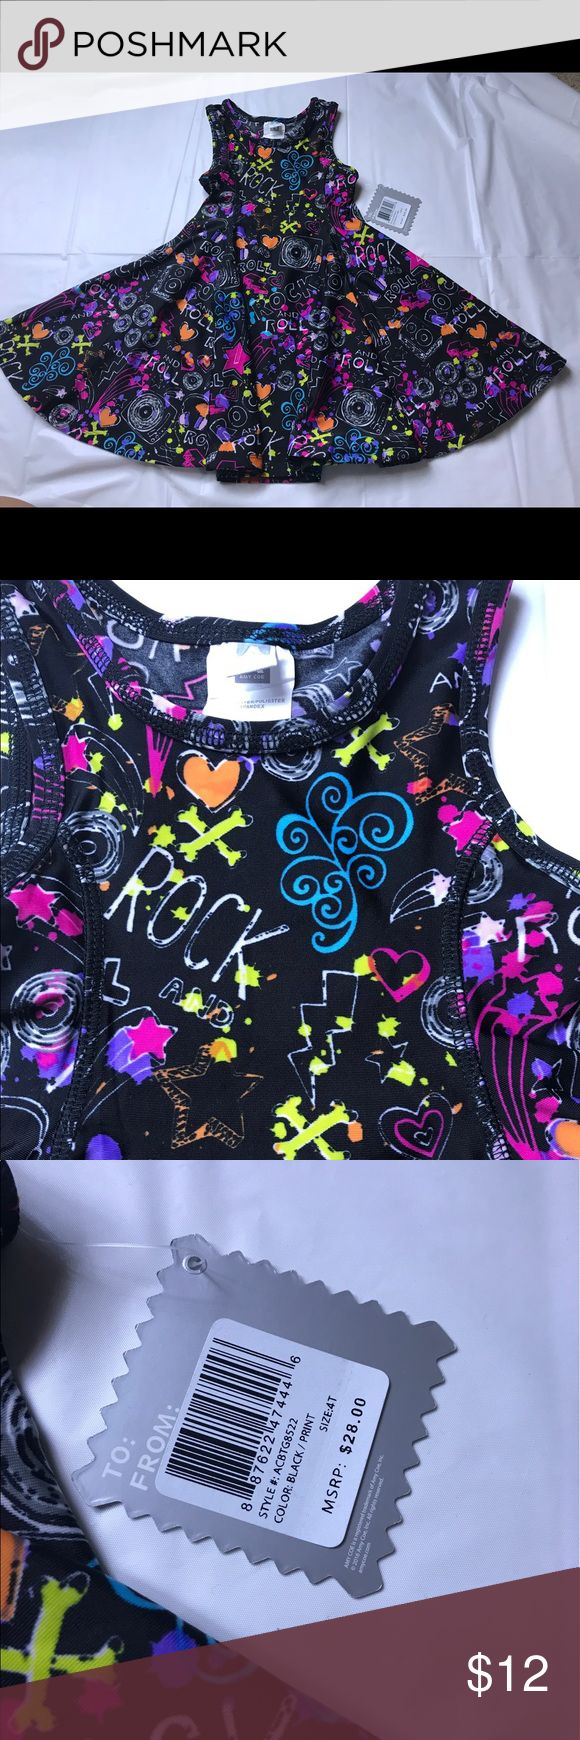 PRICE DROP 🎉 NWT Amy Coe Girls Size 4T Dress!!! This is a brand new with tags Amy Coe toddler Girls Size 4T dress!!! Please make bundle offers!!! Happy to negotiate!! Amy Coe Dresses Casual